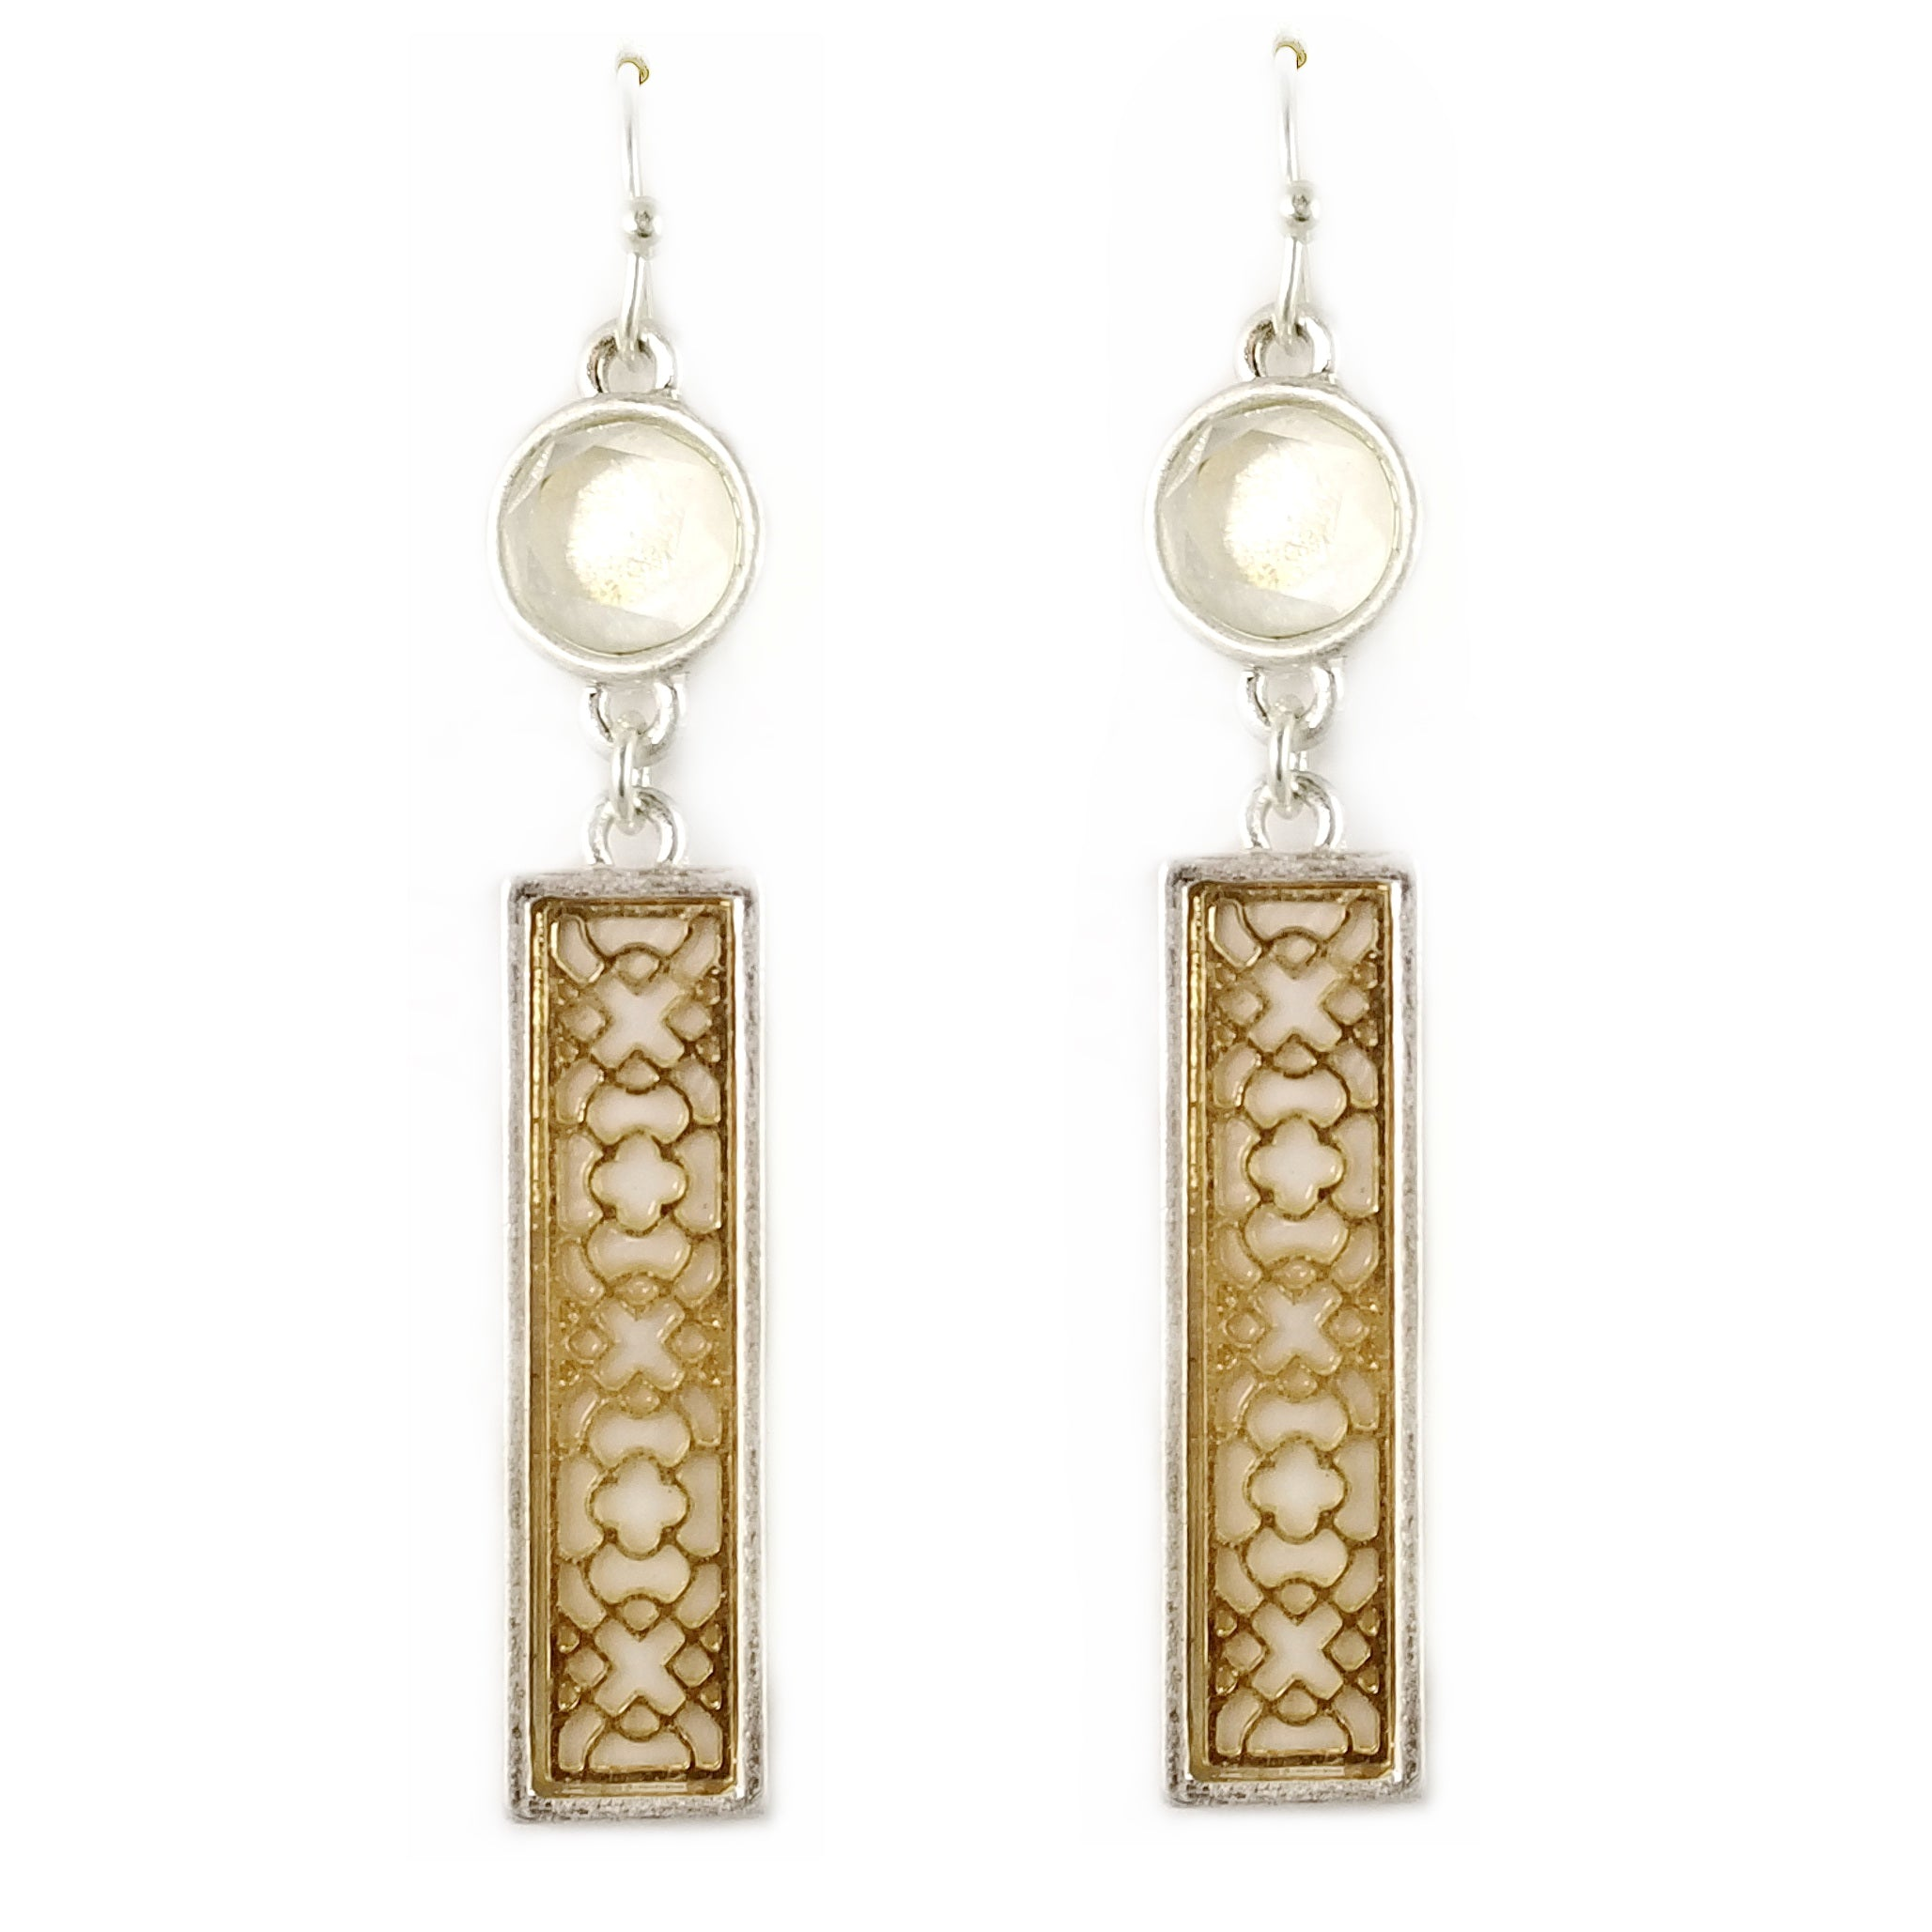 filigree popesco lace crystal earrings lv catherine french gold red